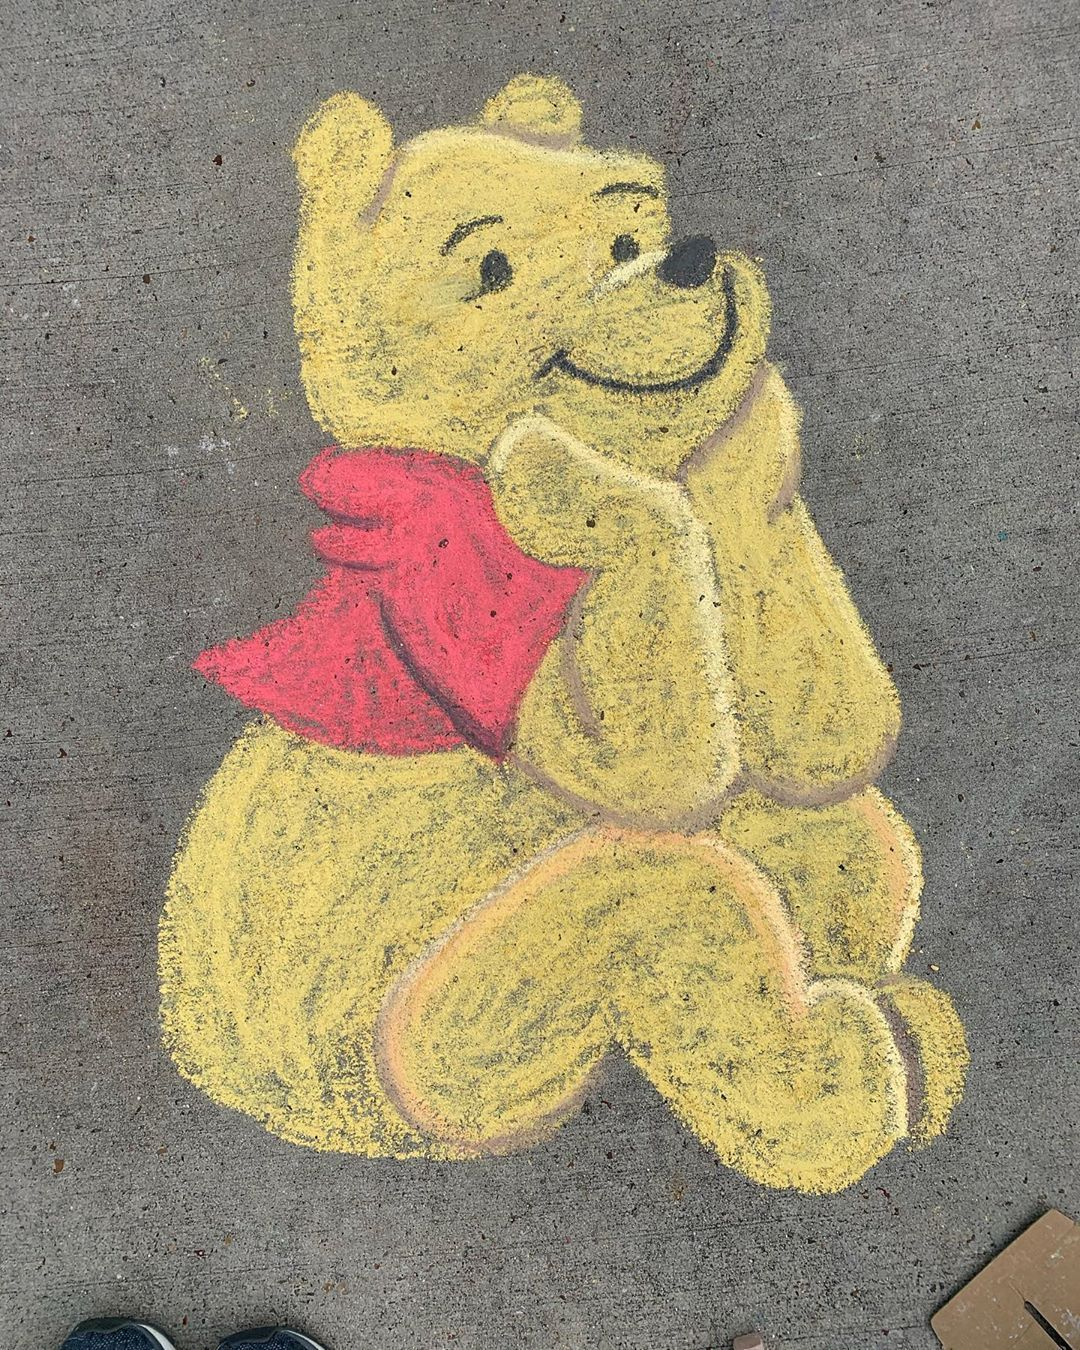 [UPDATED] 50+ Disney Chalk Art Projects (September 2020)